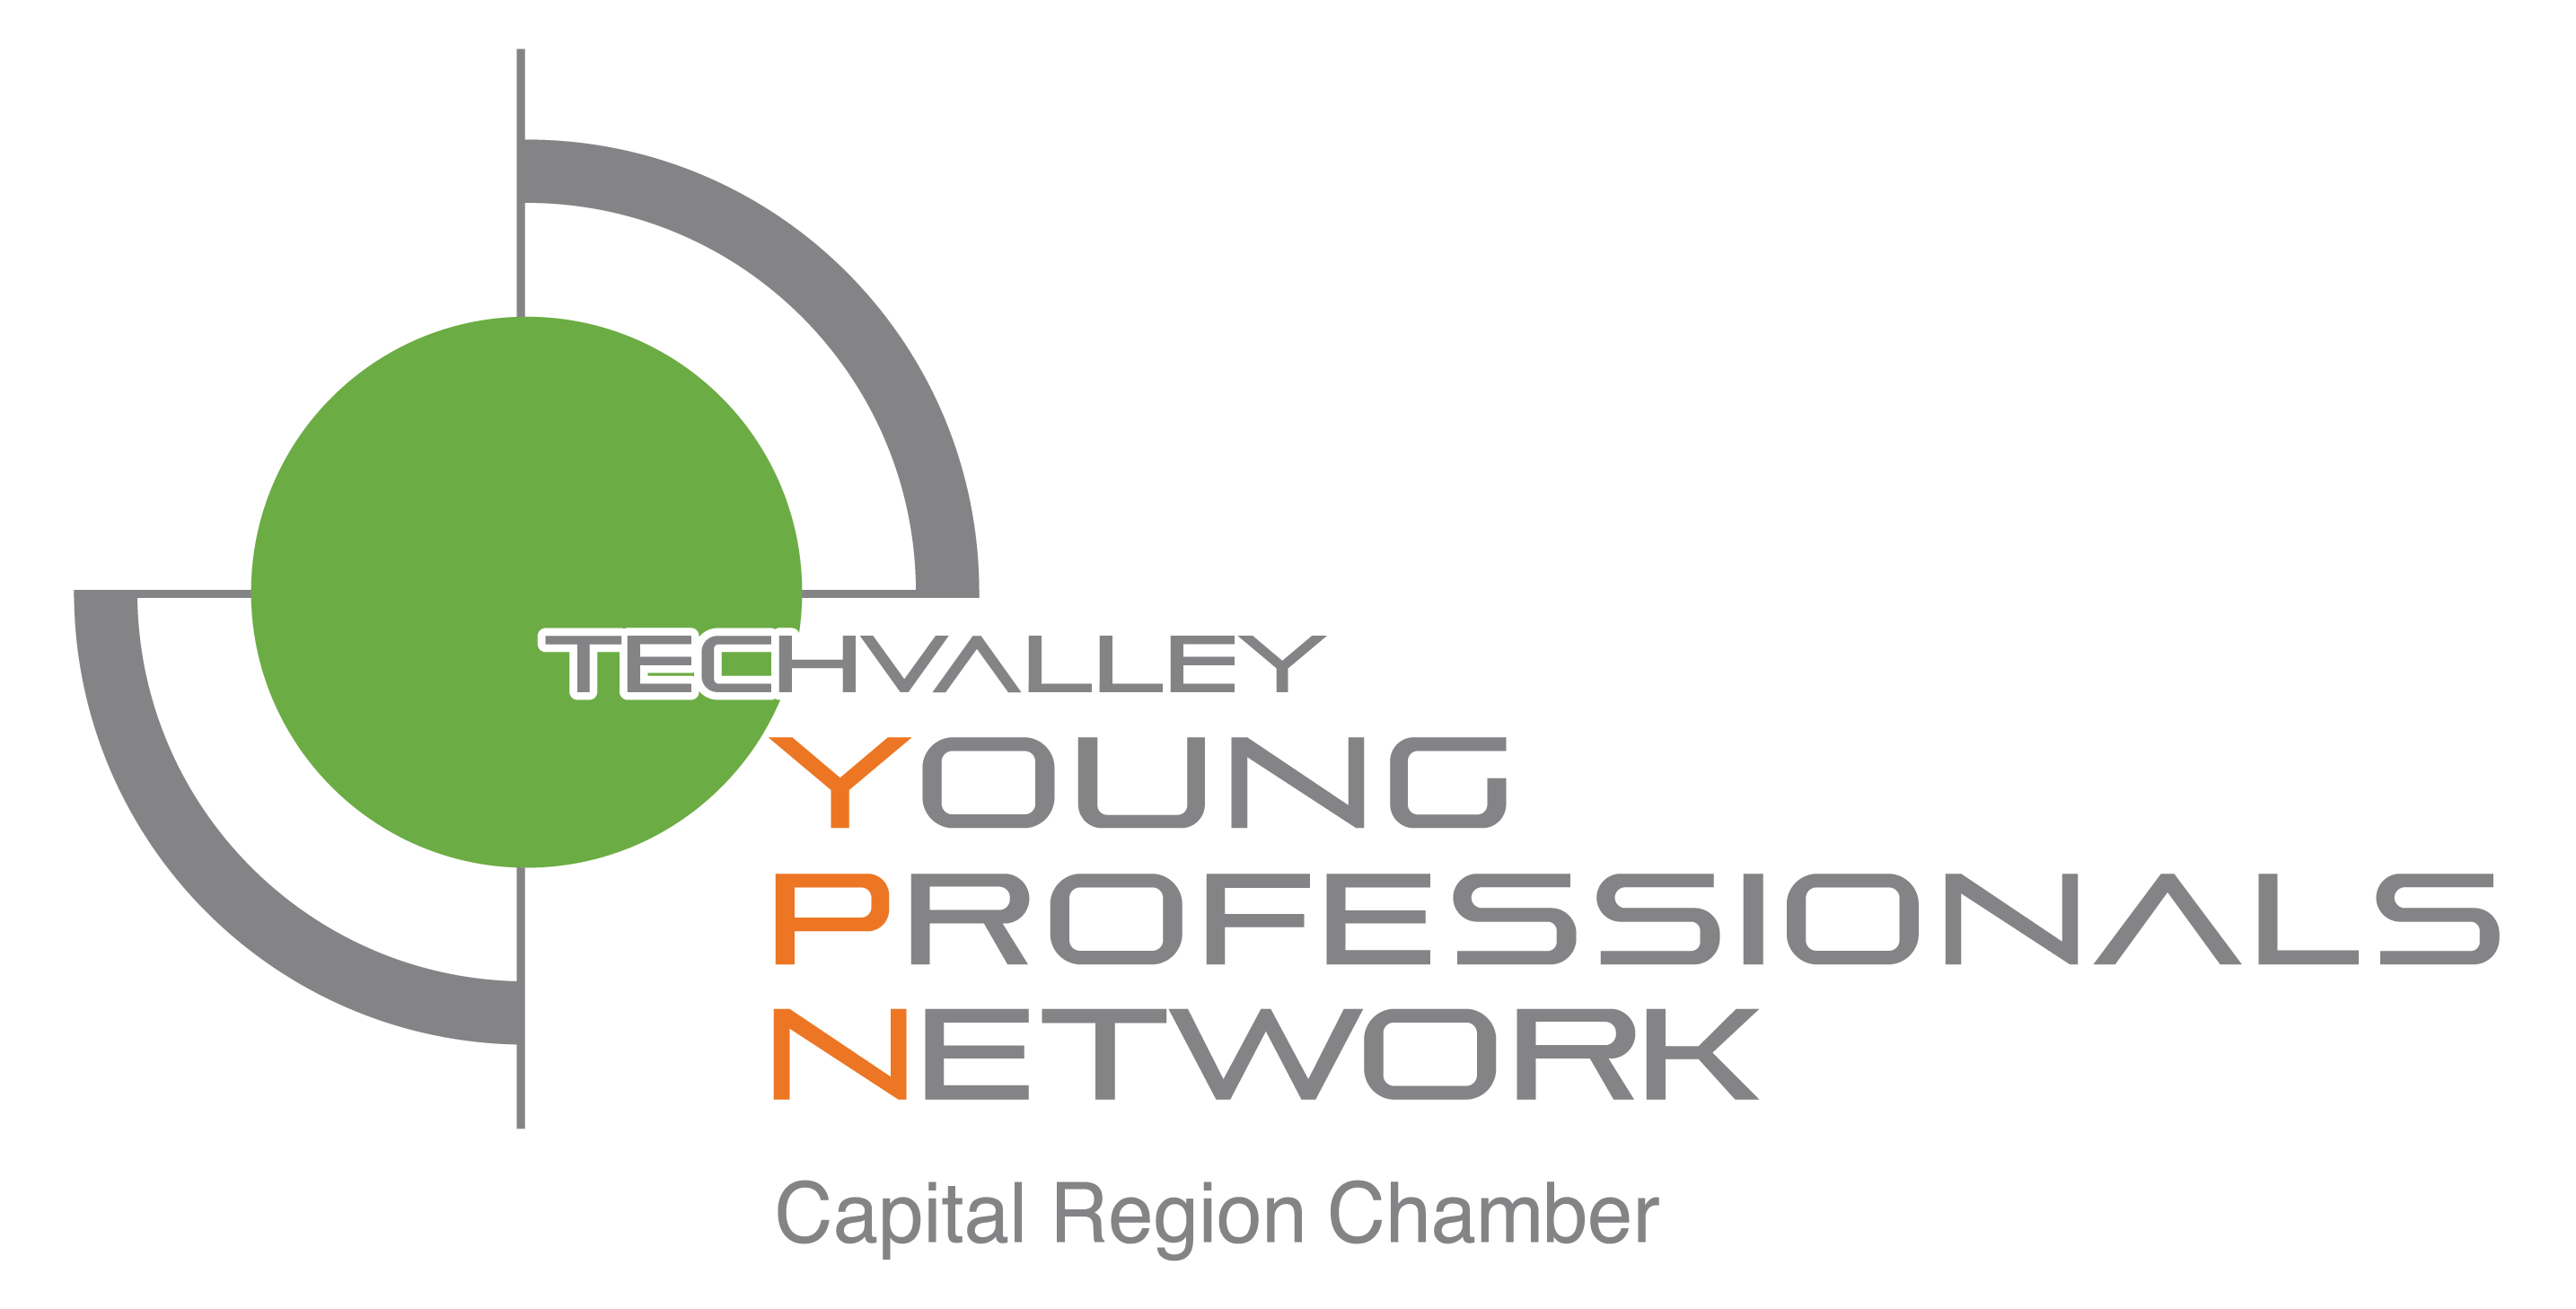 tech valley young professionals network delivers